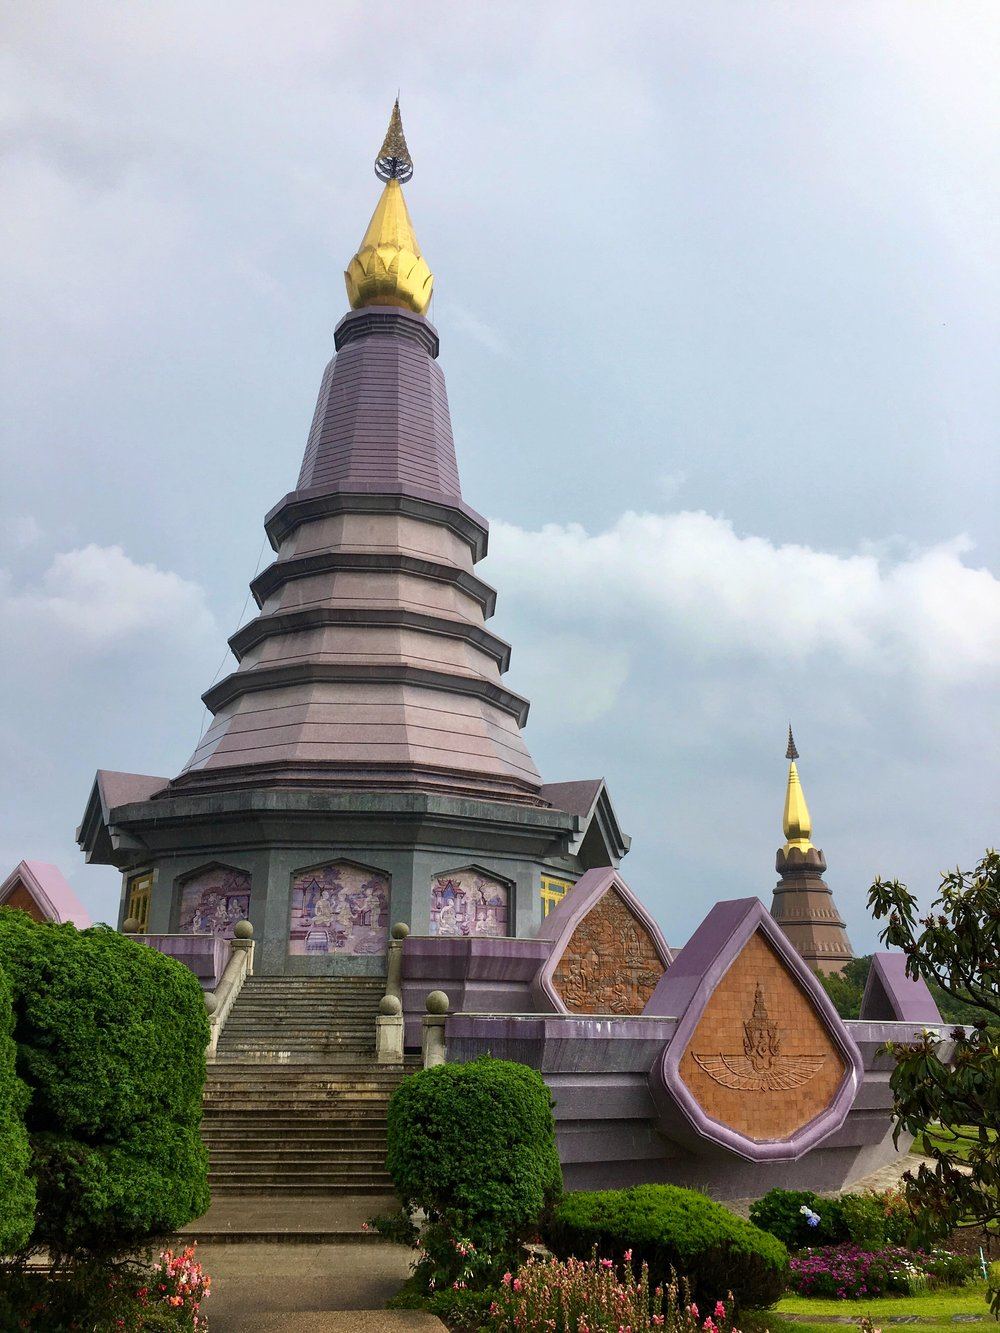 No trip to Doi Inthanon National Park is complete without visiting the modern King and Queen Pagodas atop the mountain